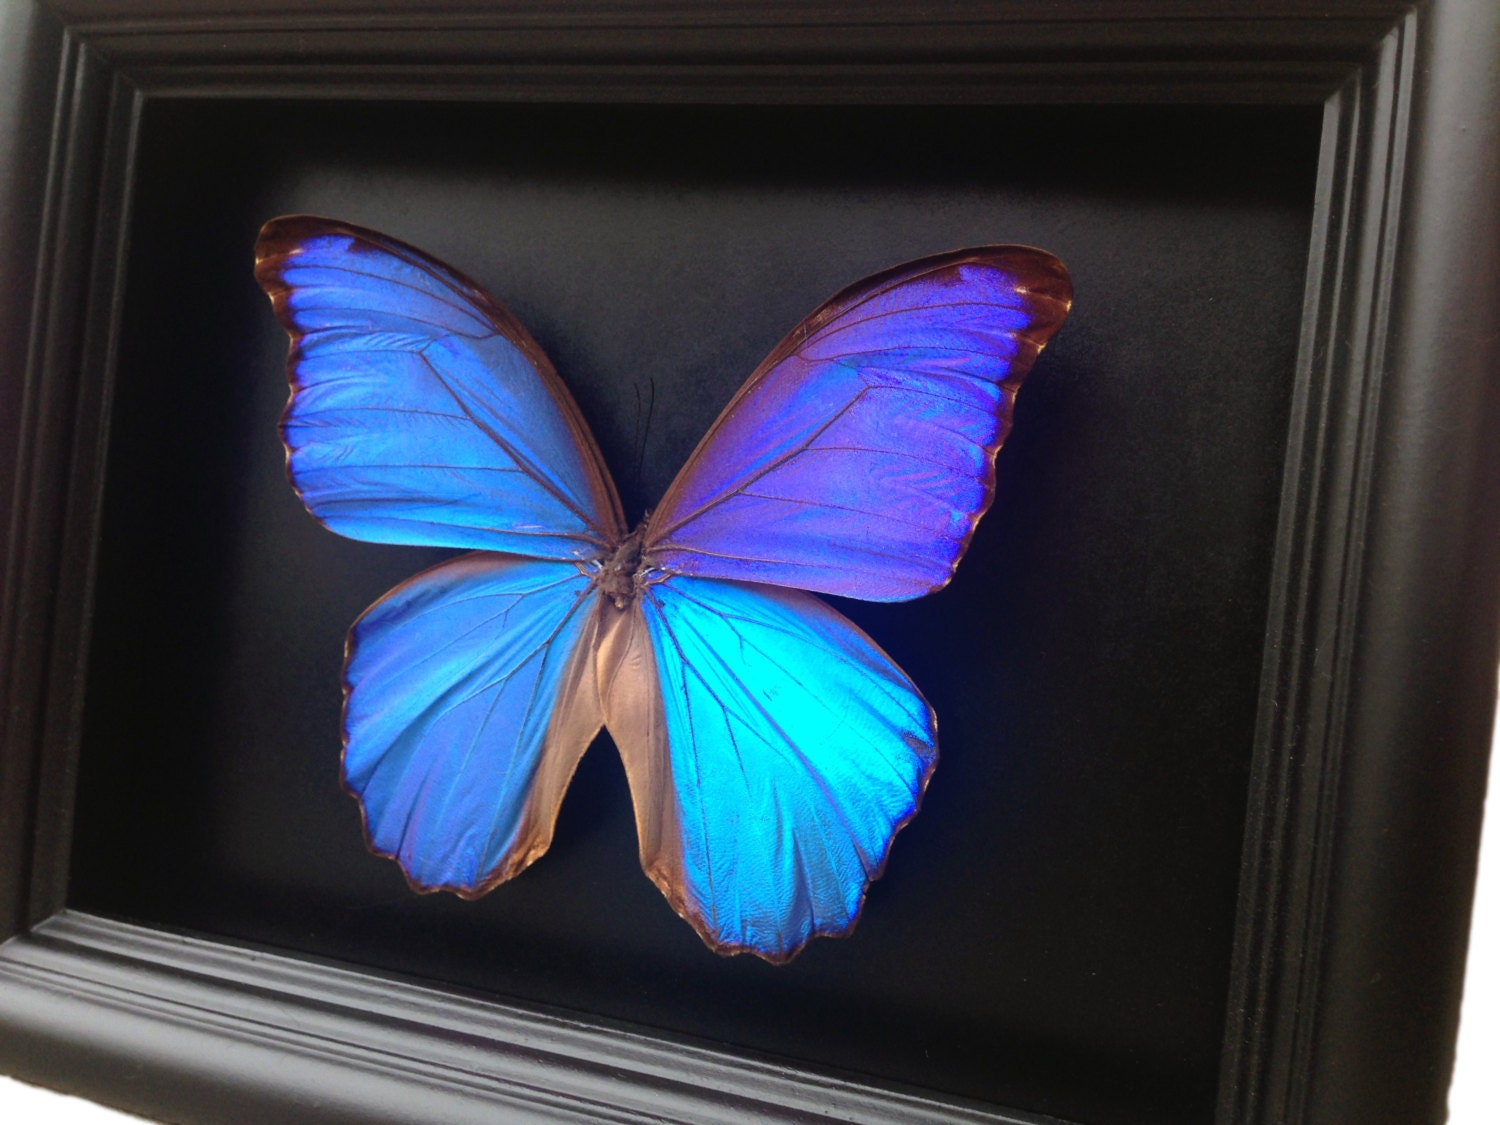 blue morpho butterfly taxidermy butterfly art butterfly decor framed butterfly butterflies taxidermy art insect art curio entomology